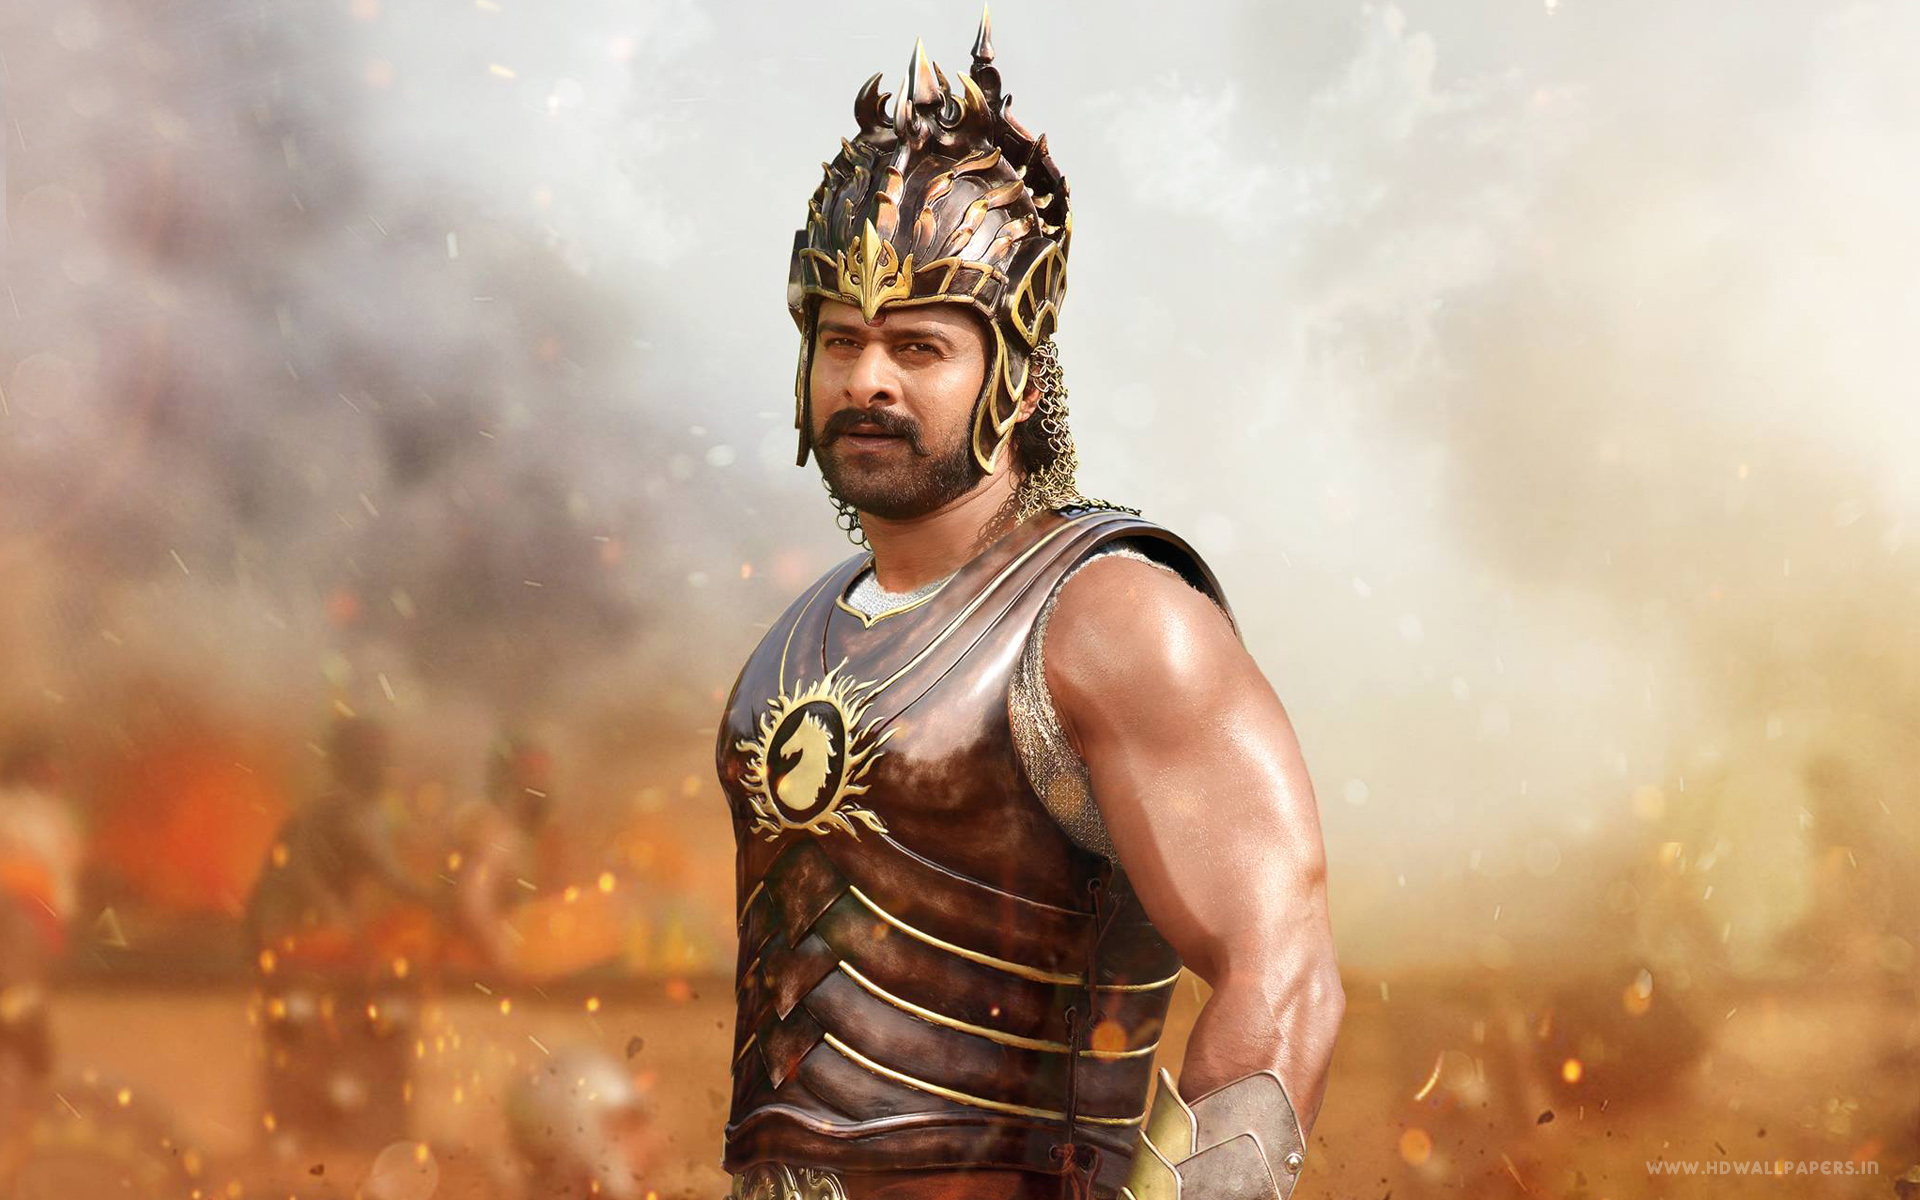 Prabhas Wallpapers, Photos And Desktop Backgrounds Up To